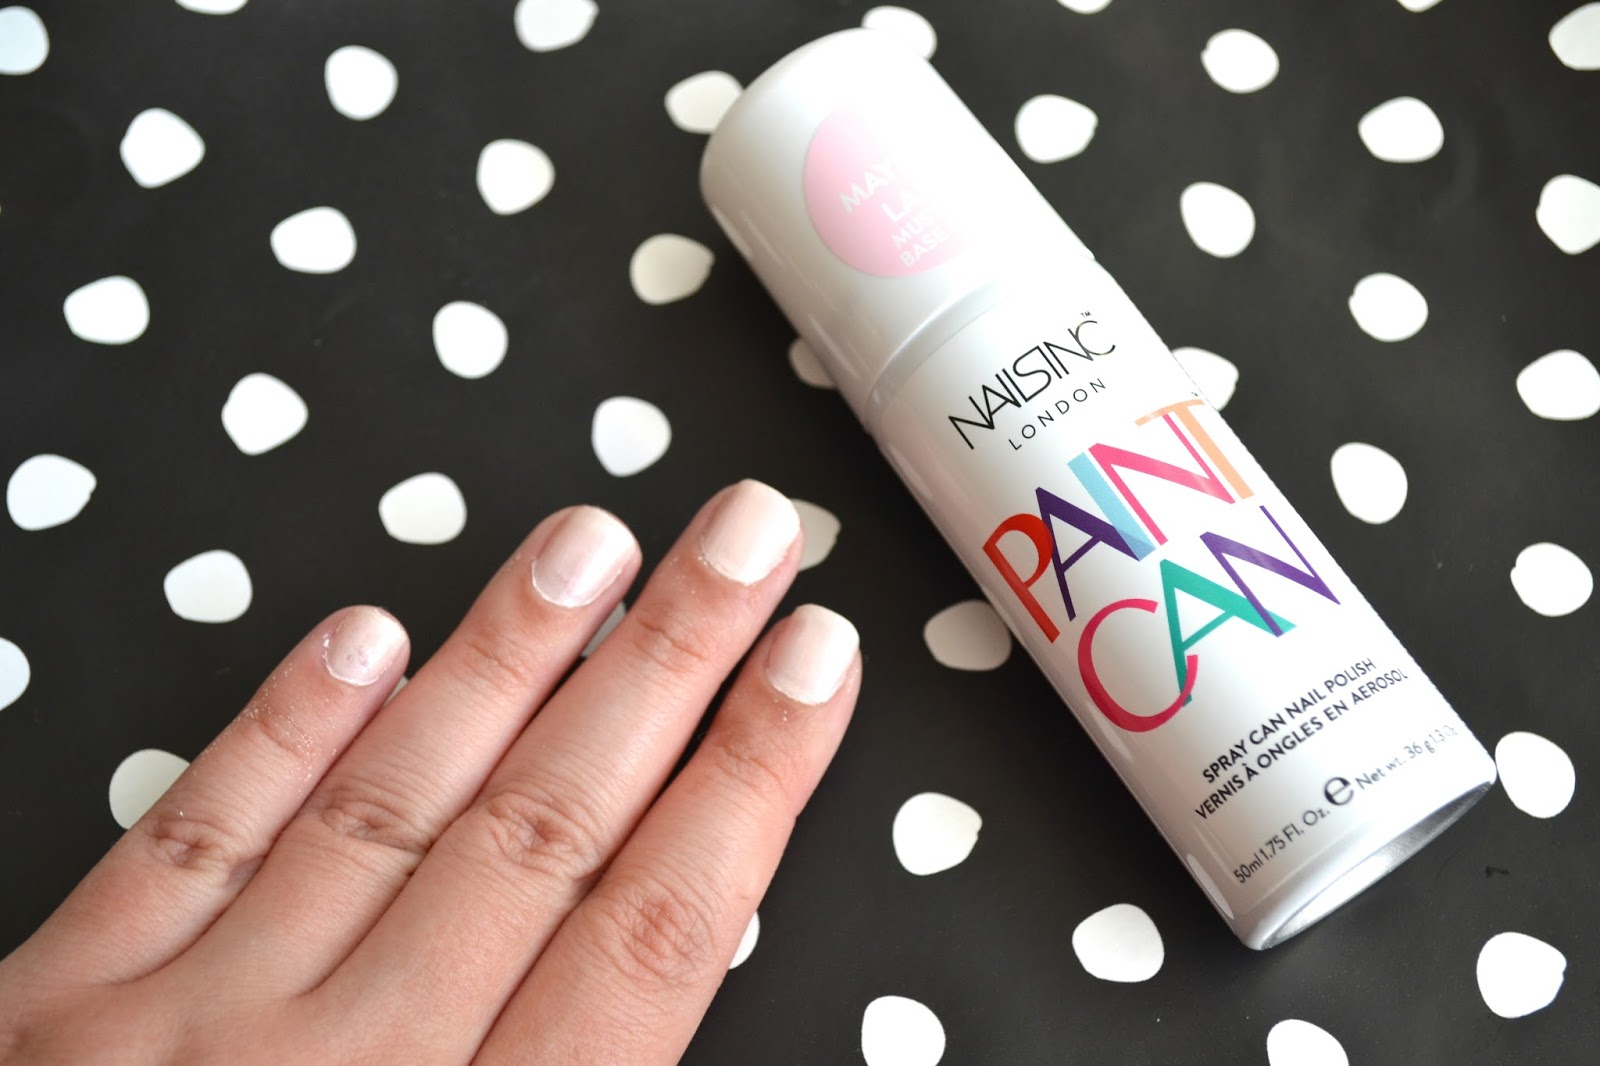 Spray on nail polish china glaze nail spray reviews - My Nails Are Done With The Top Coat And I Washed Off The Excess That Was On My Skin I Messed Up My Pinky Nail When I Was Applying The Top Coat